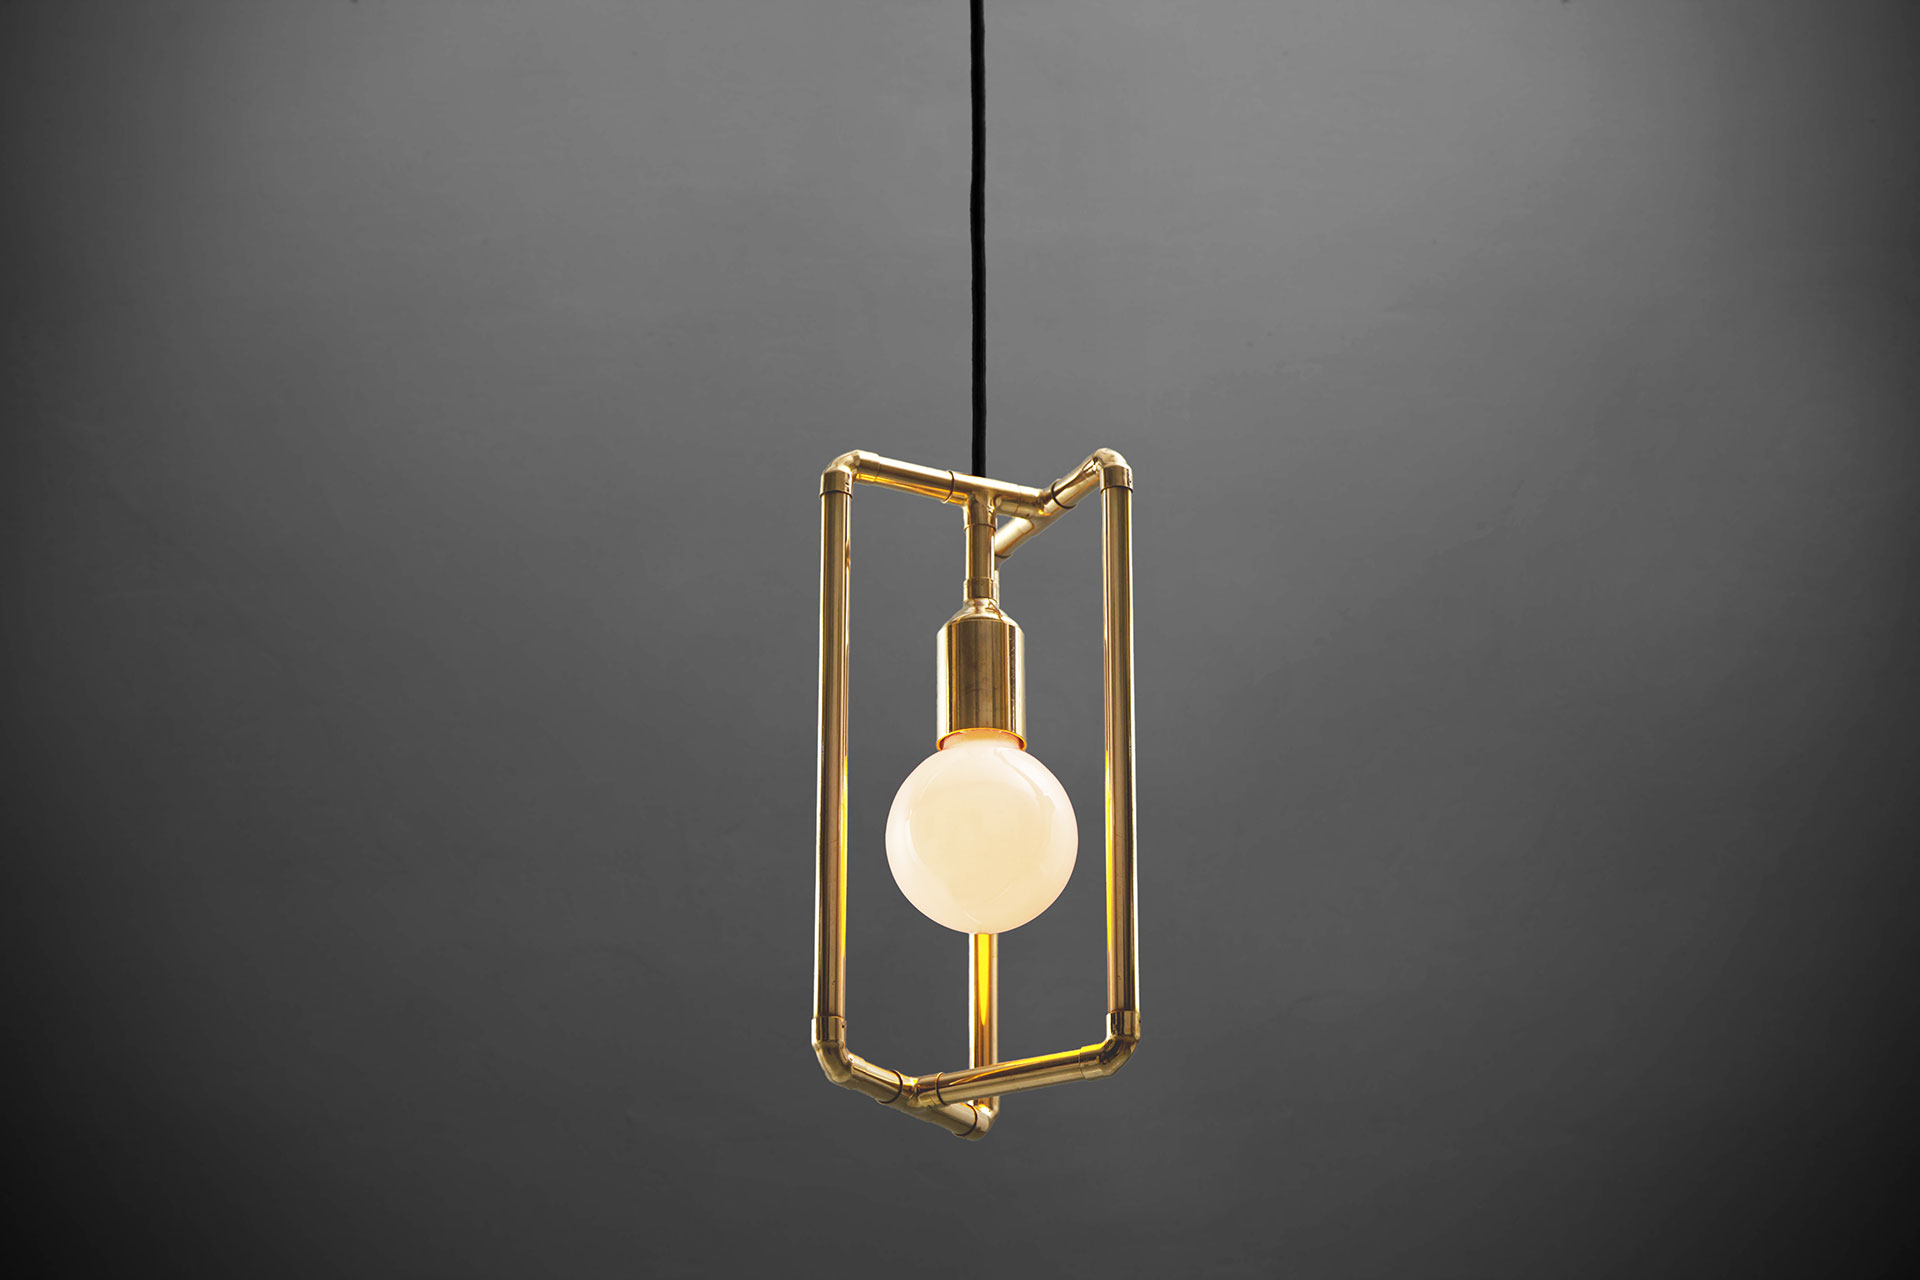 Gold pendant lamp inspired by modern industrial design